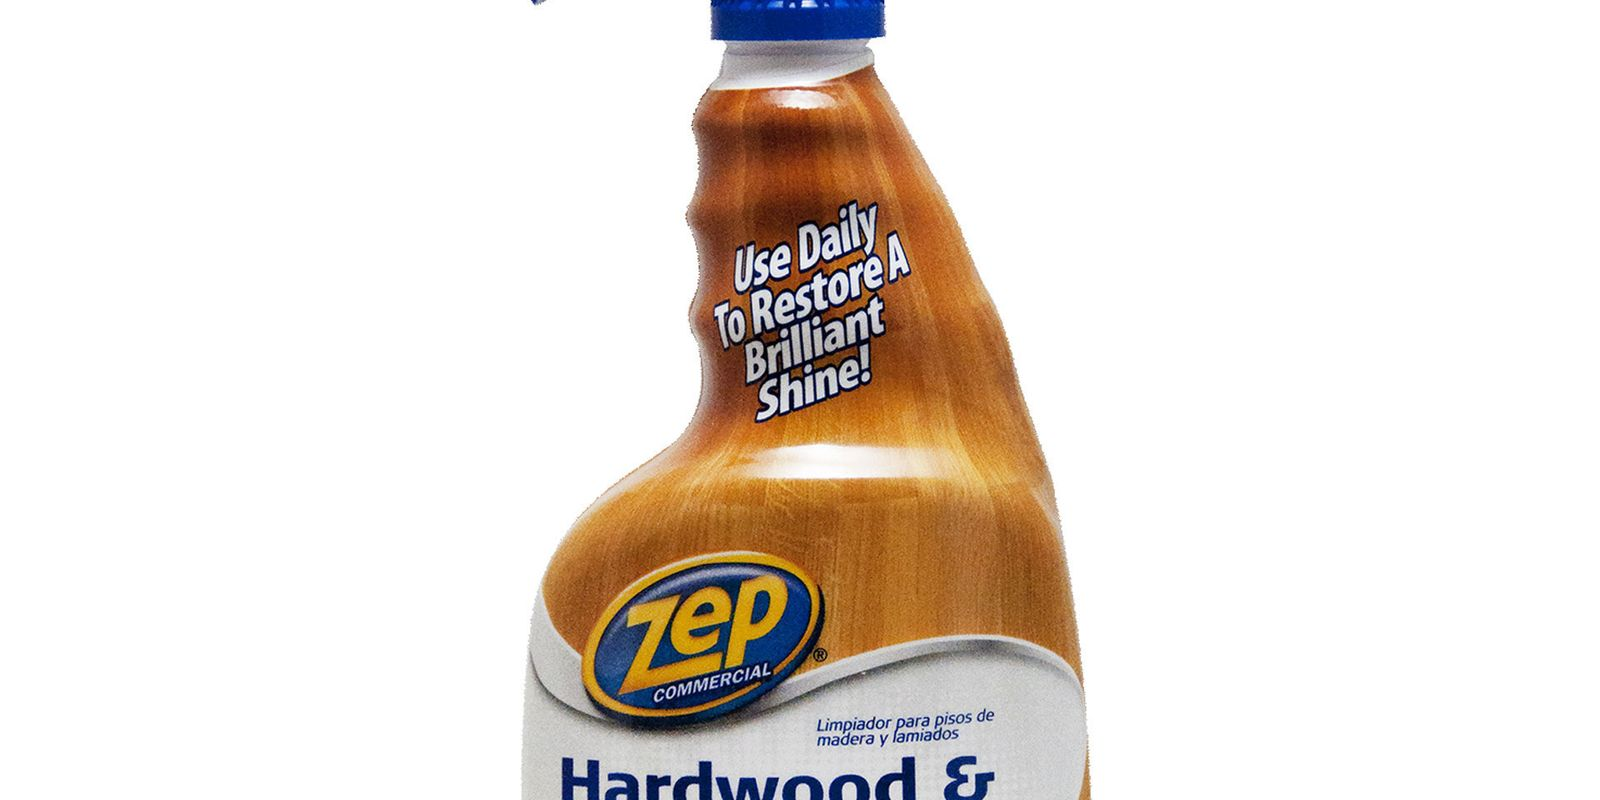 ZEP Commercial Hardwood Laminate Cleaner Review - Clean laminate wood floors